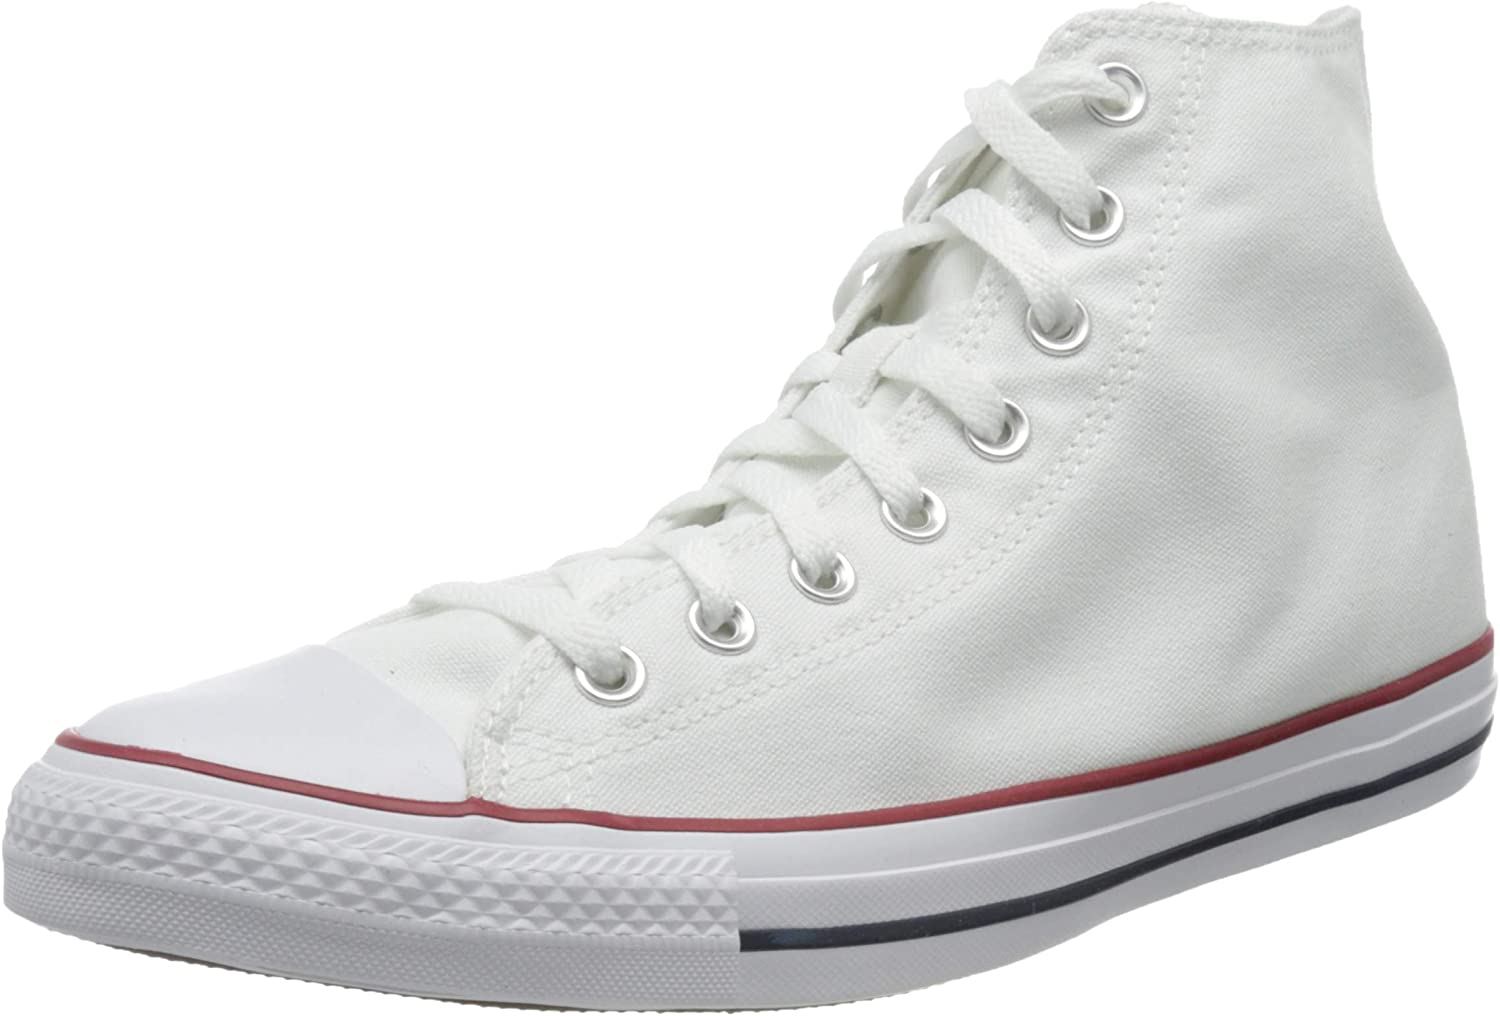 Converse mens cheap Fashion New popularity Sneakers